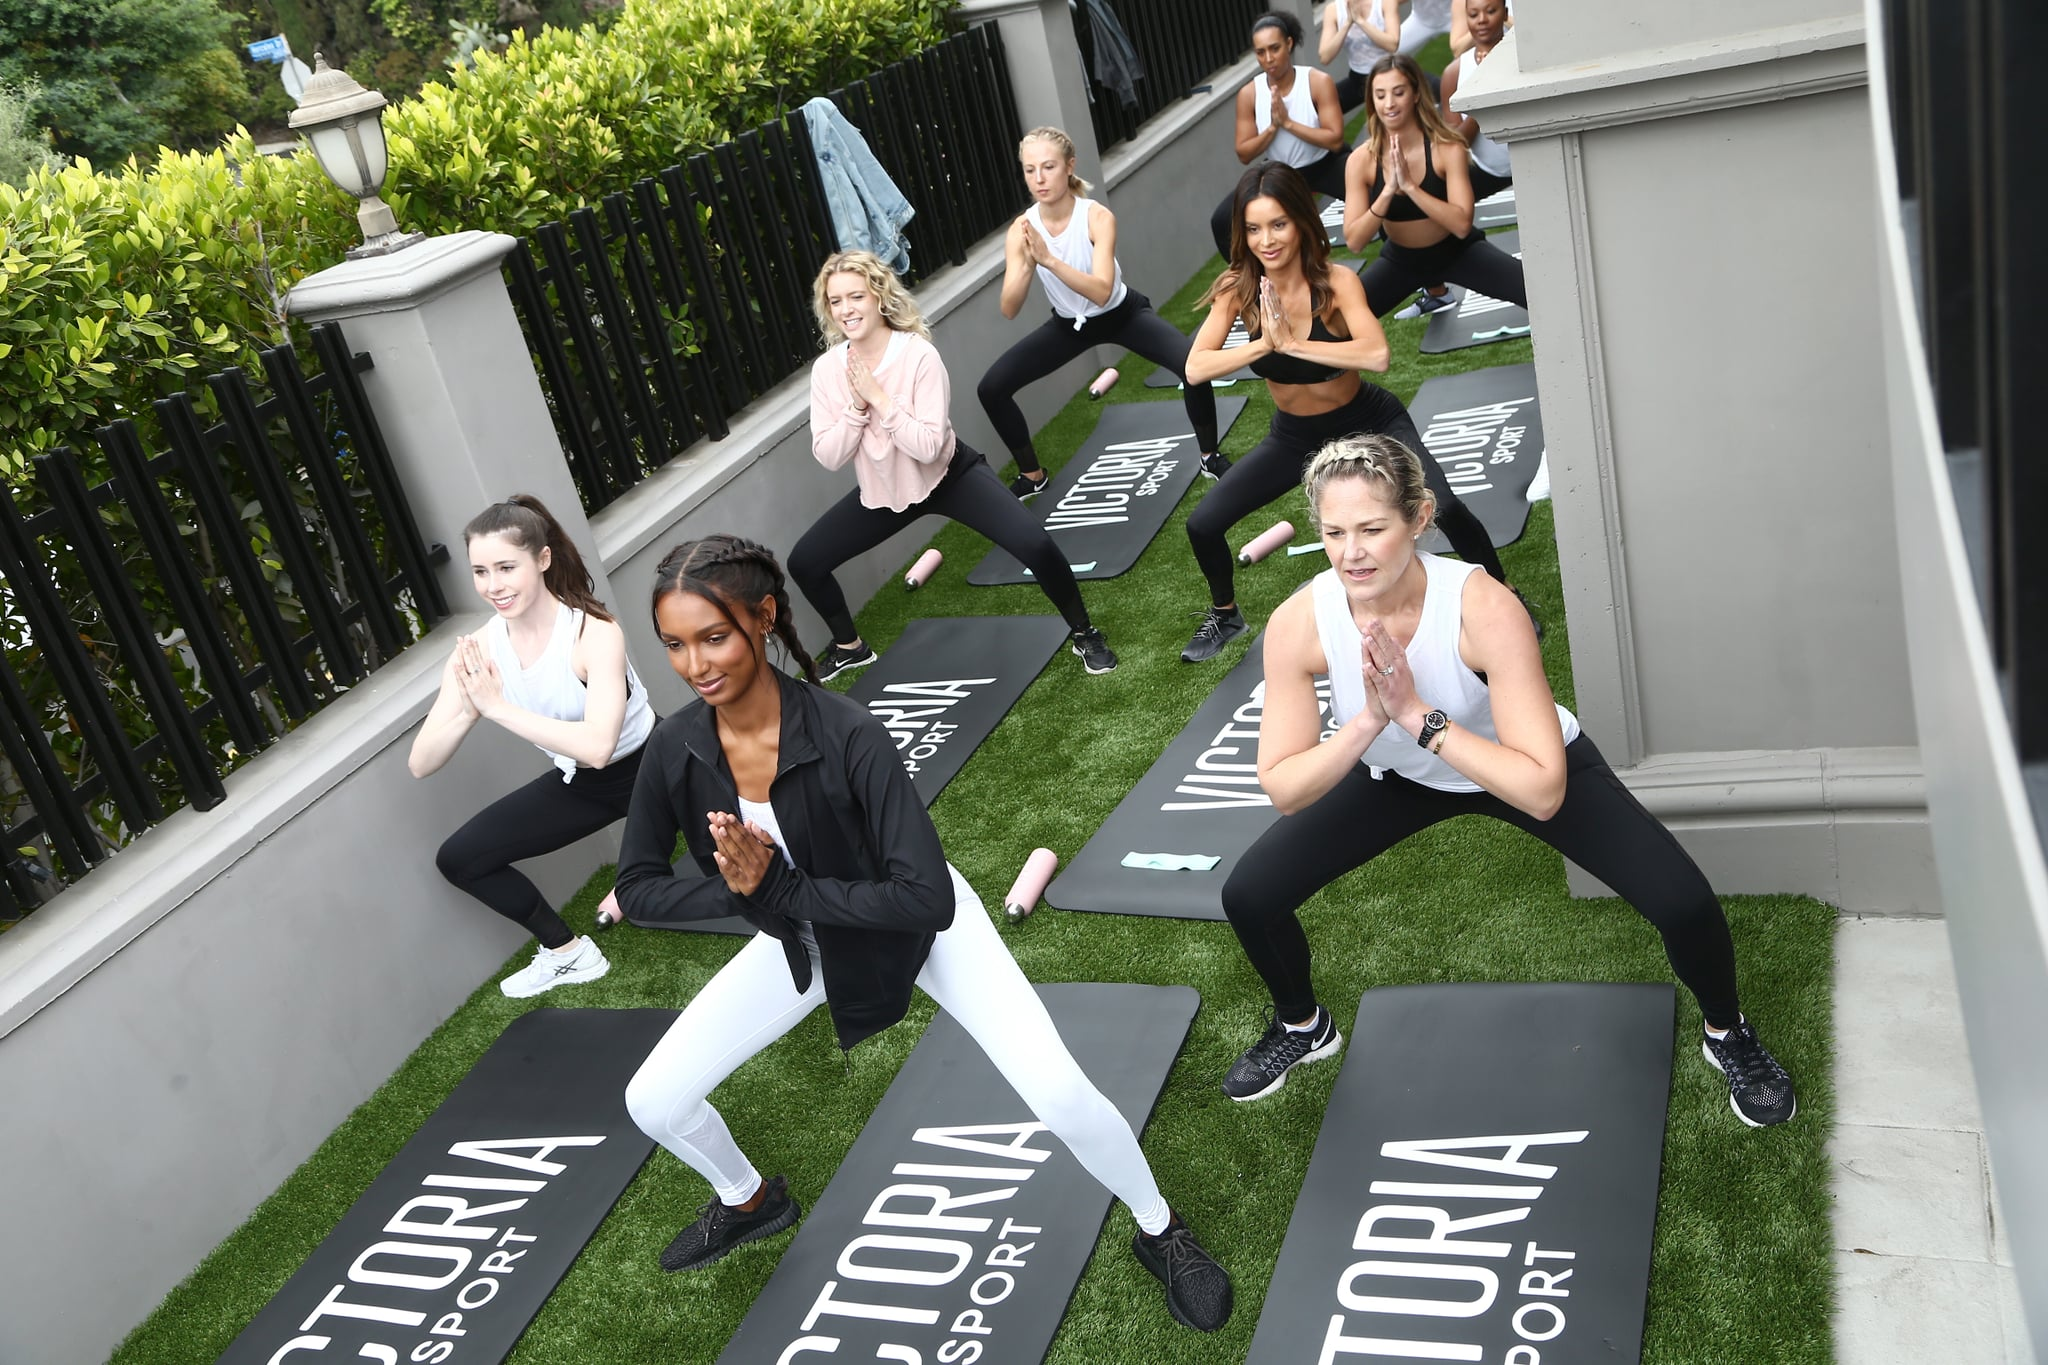 LOS ANGELES, CA - MAY 24:  Jasmine Tookes (C) and guests attend Victorias Secret and Tone It Up Host a Slay Then Rosé workout with Angel Jasmine Tookes on May 24, 2018 in Los Angeles, California.  (Photo by Tommaso Boddi/Getty Images for Victoria's Secret)